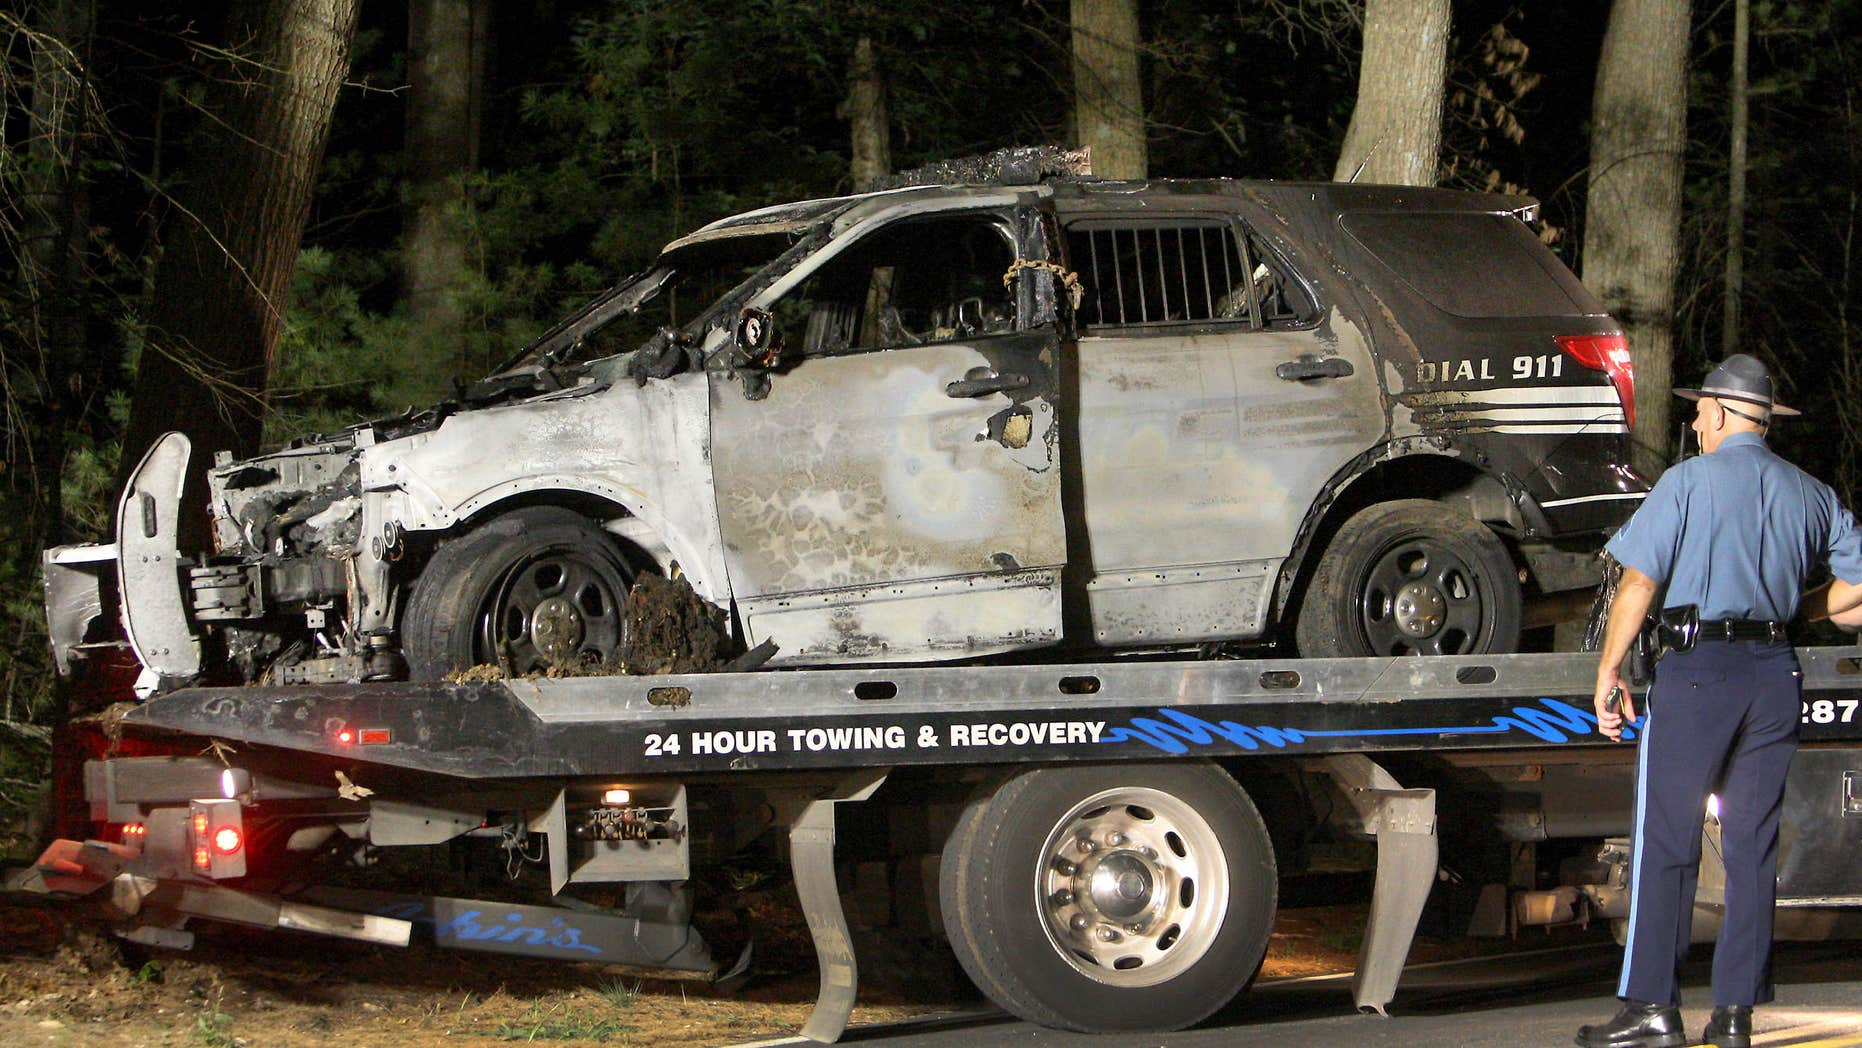 Sept. 2, 2015: A police officer watches as a cruiser that was shot at is removed from Forest Road